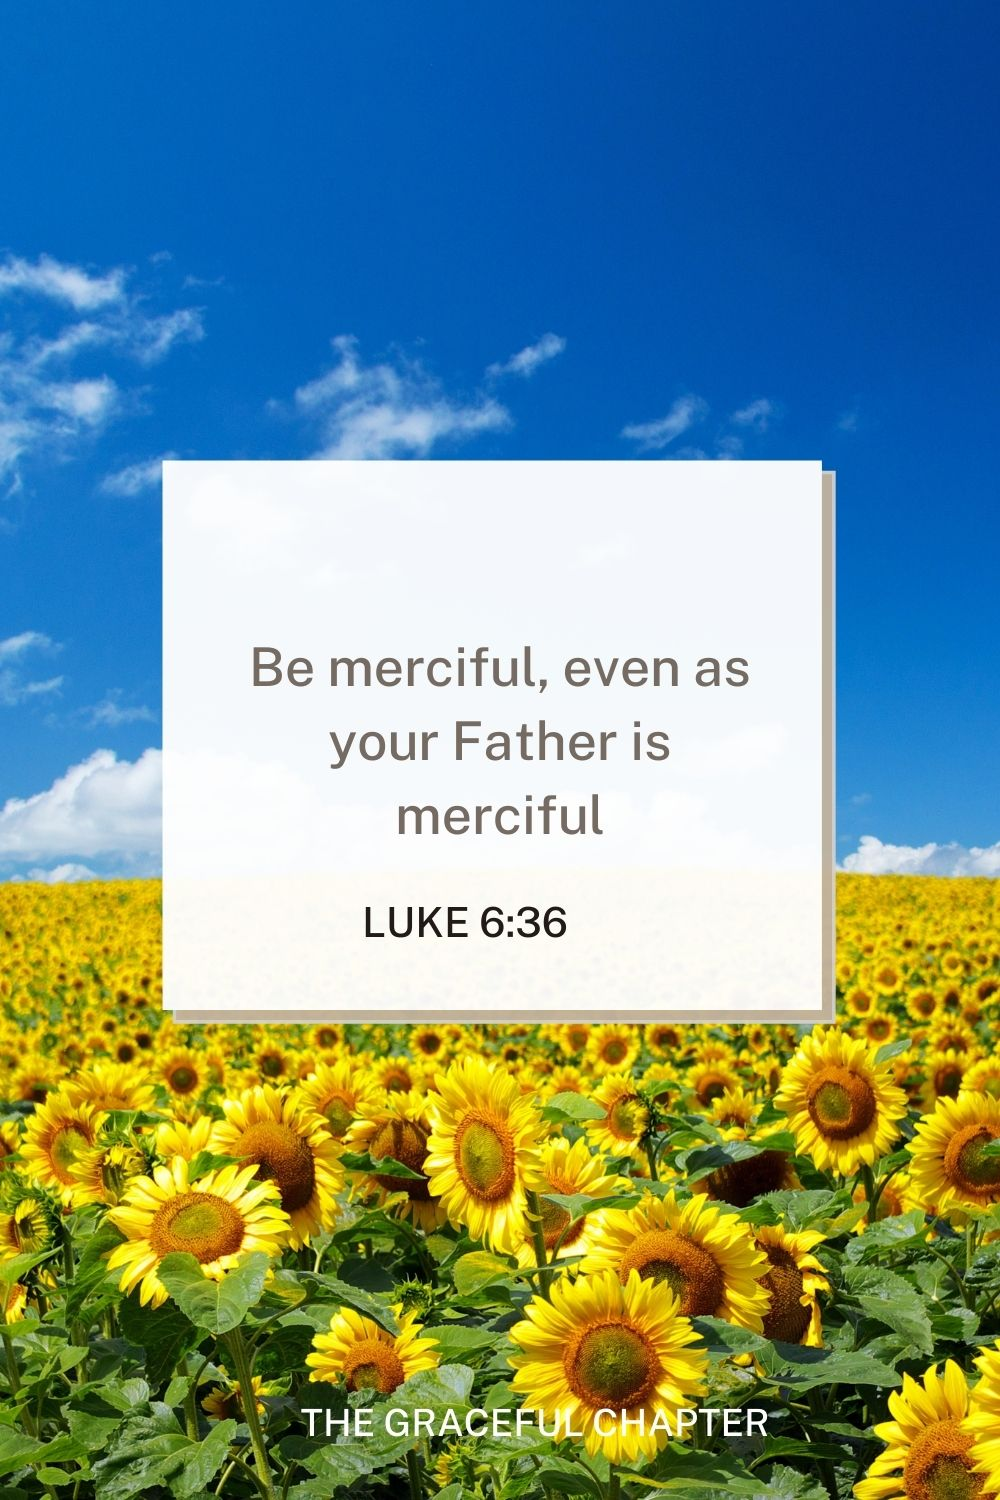 Be merciful, even as your Father is merciful Luke 6:36 - mercy bible verses esv